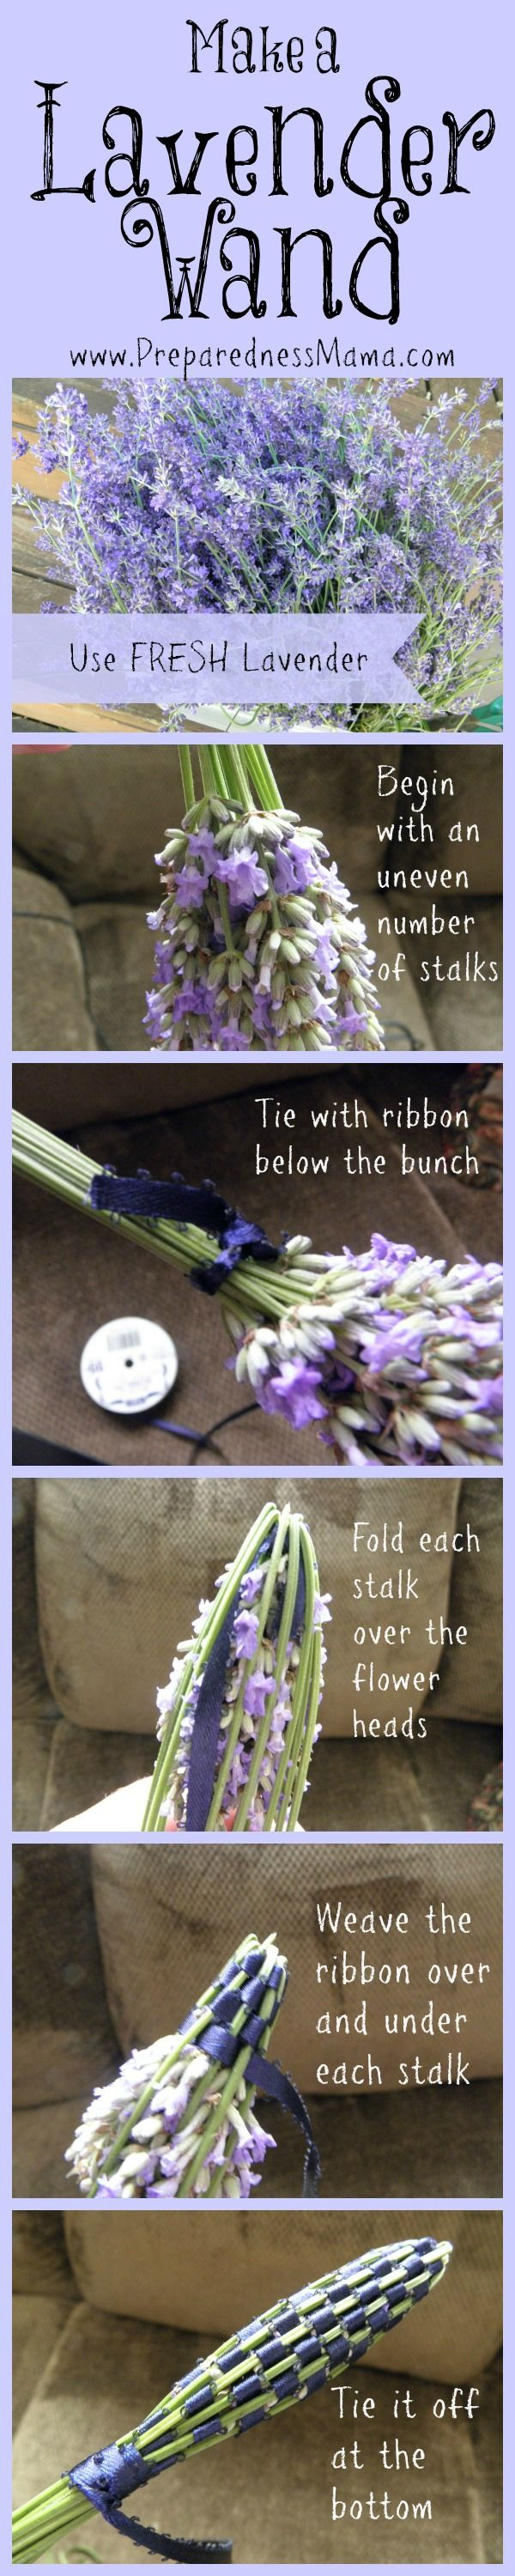 5 Useful {and fun} Things to Do With Your Lavender Harvest